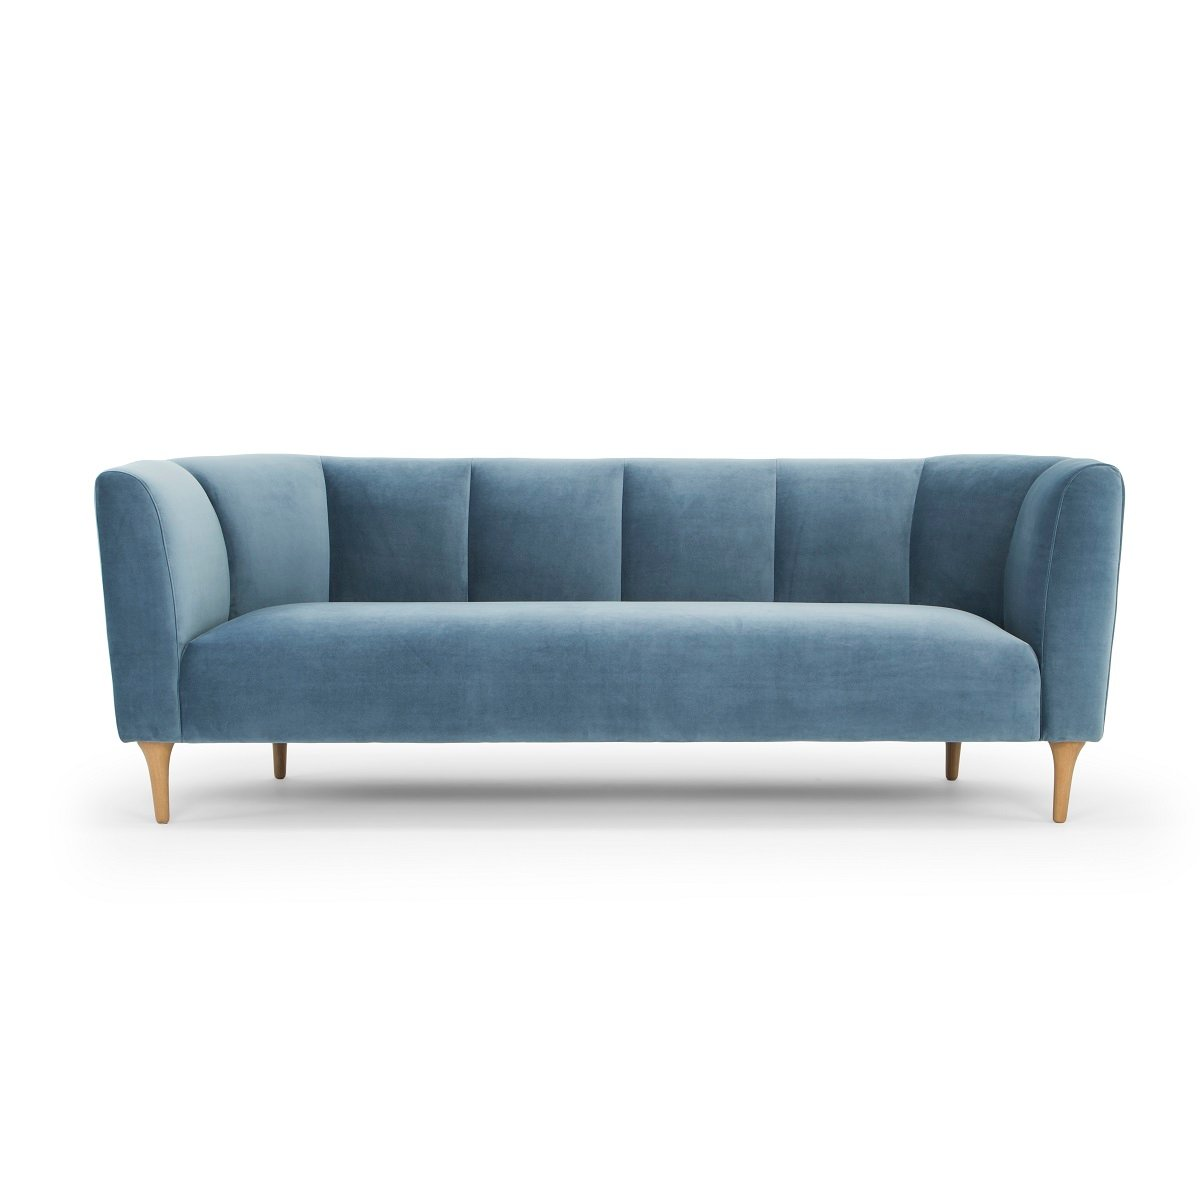 Sailor 3 Seater Sofa